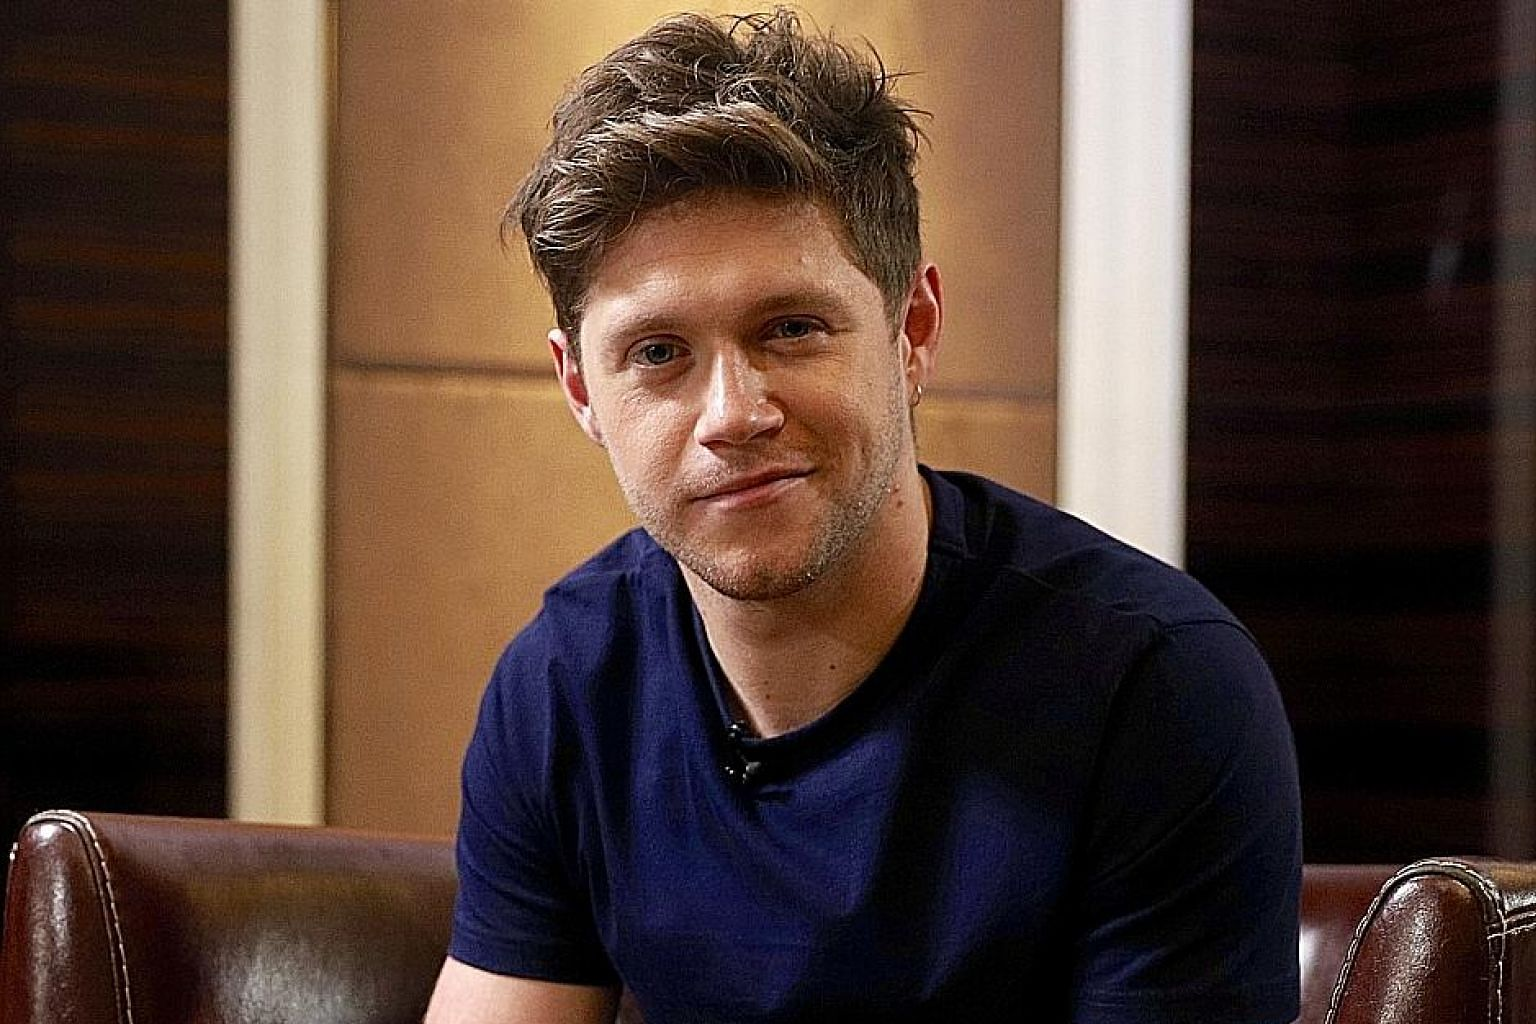 Irish singer Niall Horan's first single off his upcoming sophomore album is the swagger-filled pop-rock track Nice To Meet Ya.